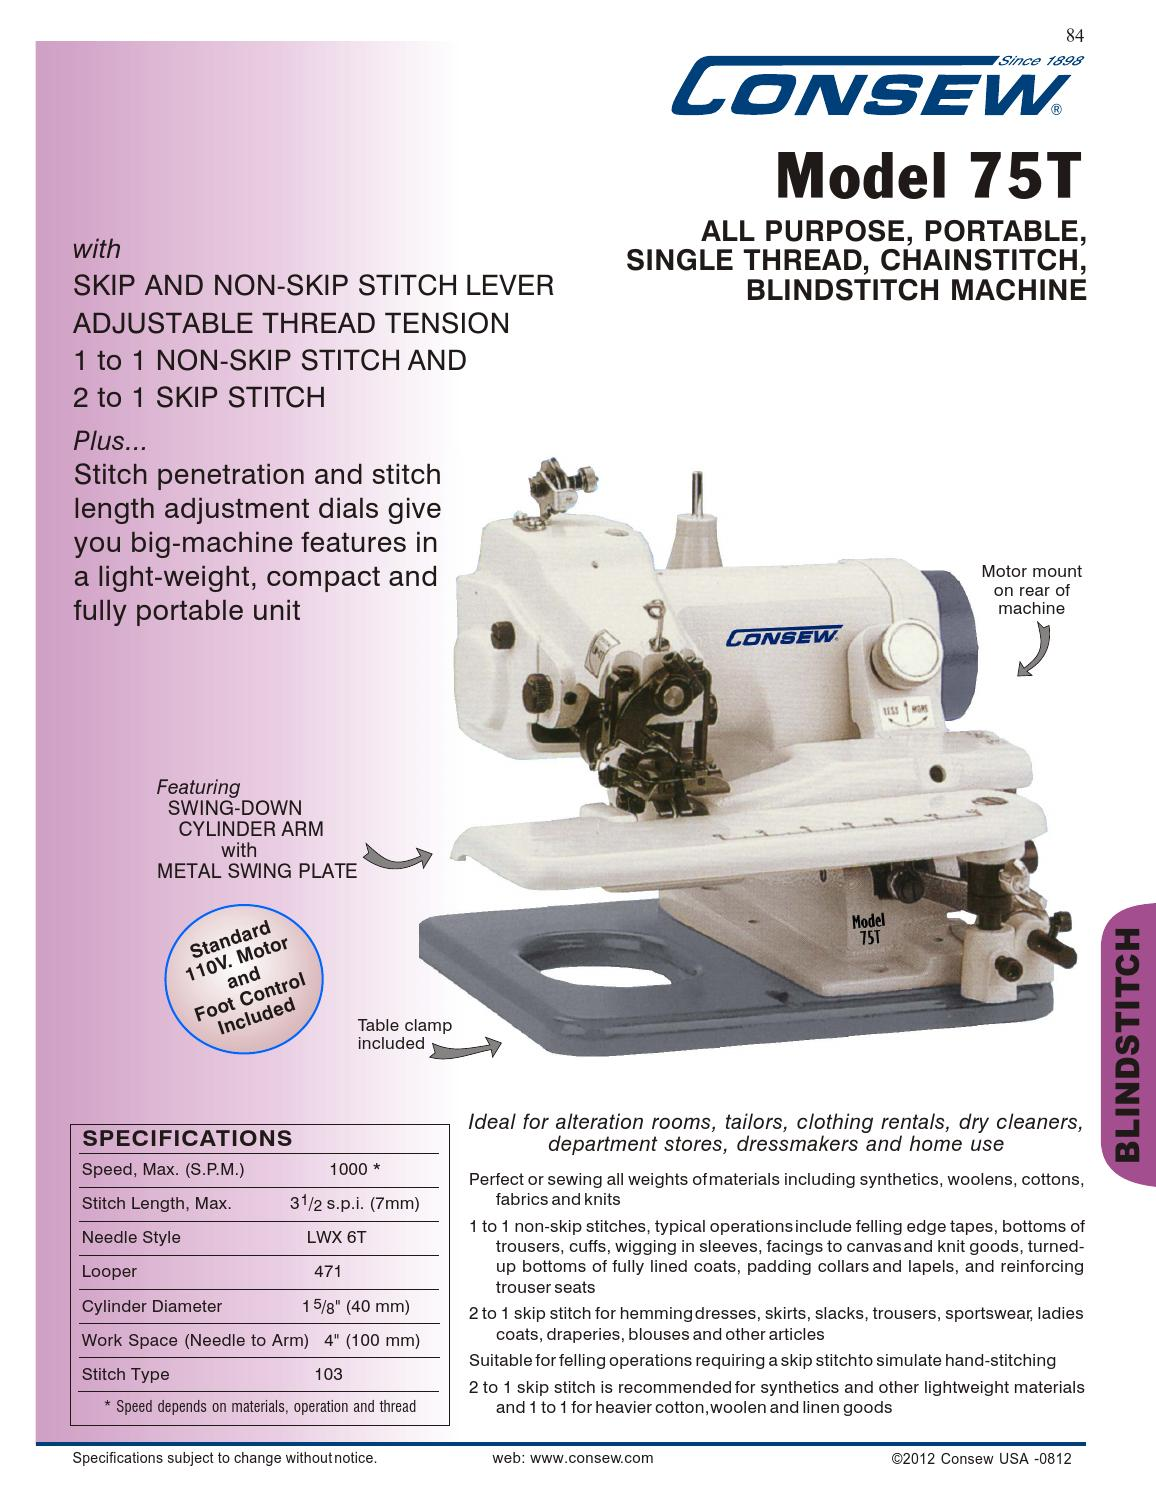 Looper For Consew 75T Portable Blindstitch Sewing Machine